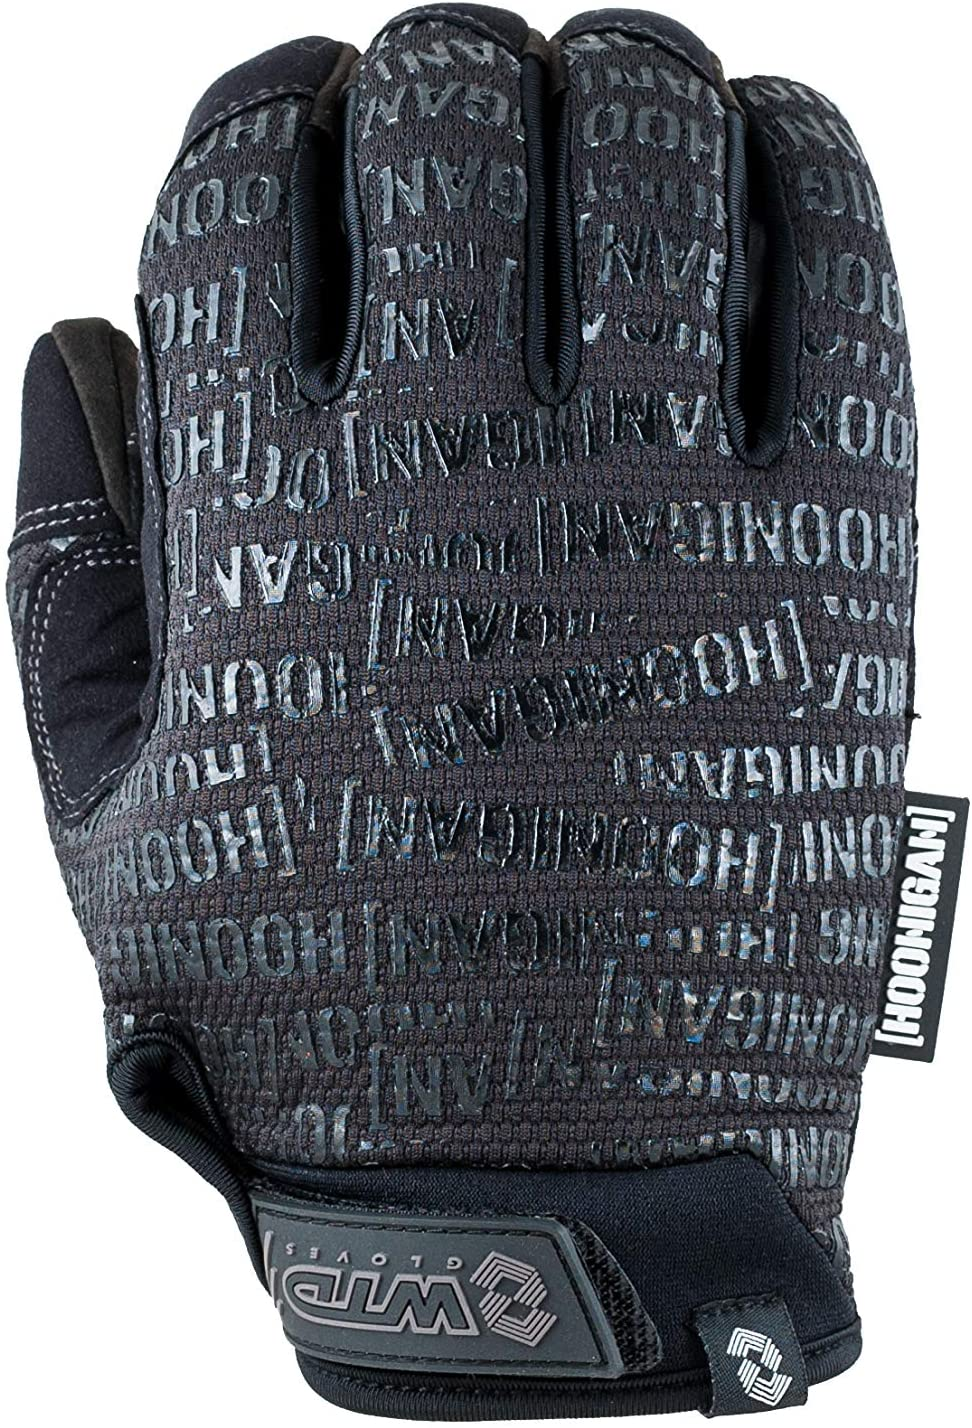 WTD Hoonigan Censor Bar Touchscreen Mechanics Glove_Scatter Print (Extra Large)